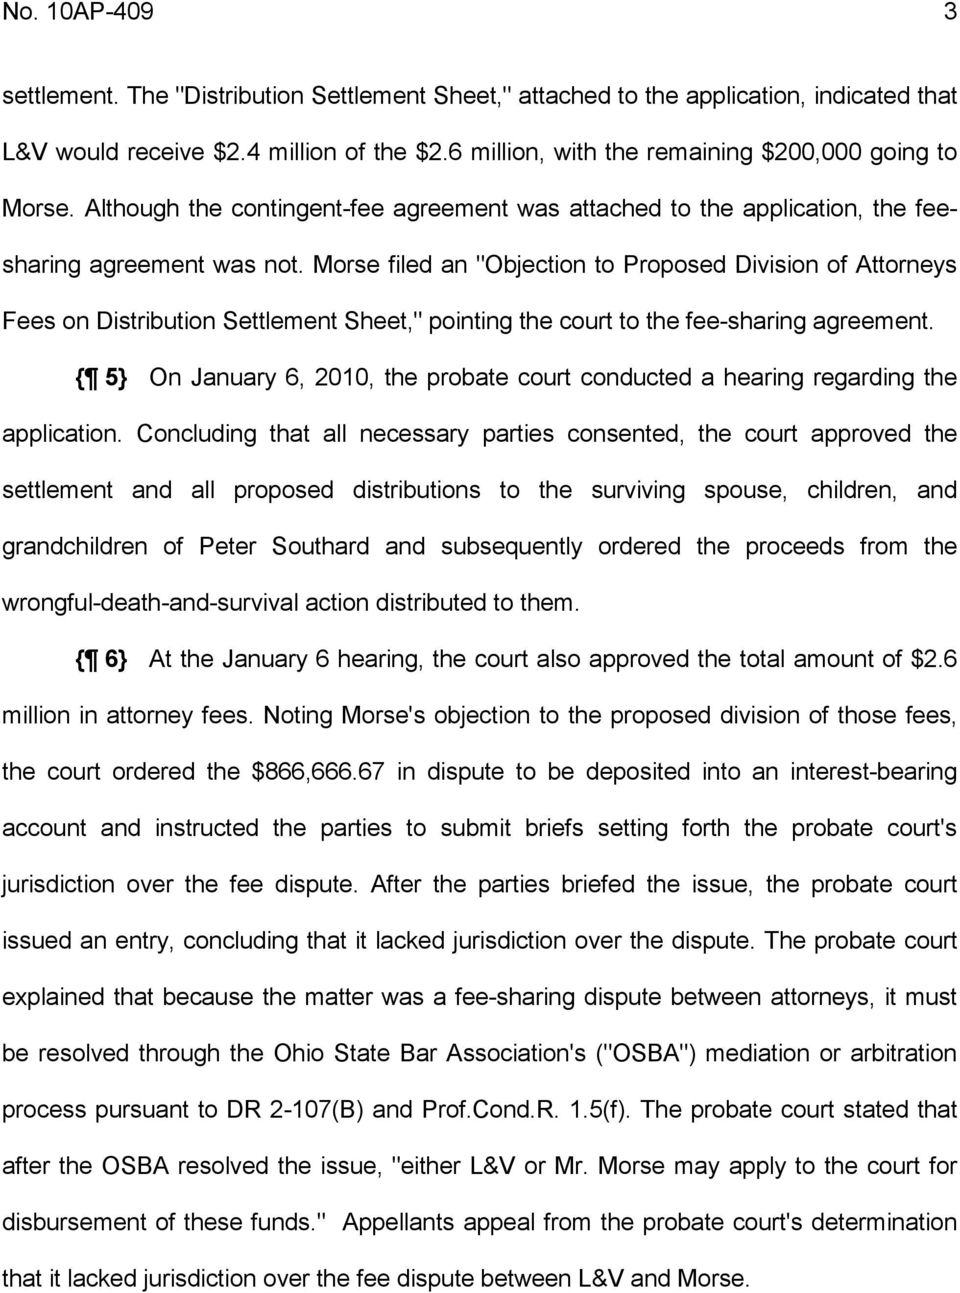 "Morse filed an ""Objection to Proposed Division of Attorneys Fees on Distribution Settlement Sheet,"" pointing the court to the fee-sharing agreement."